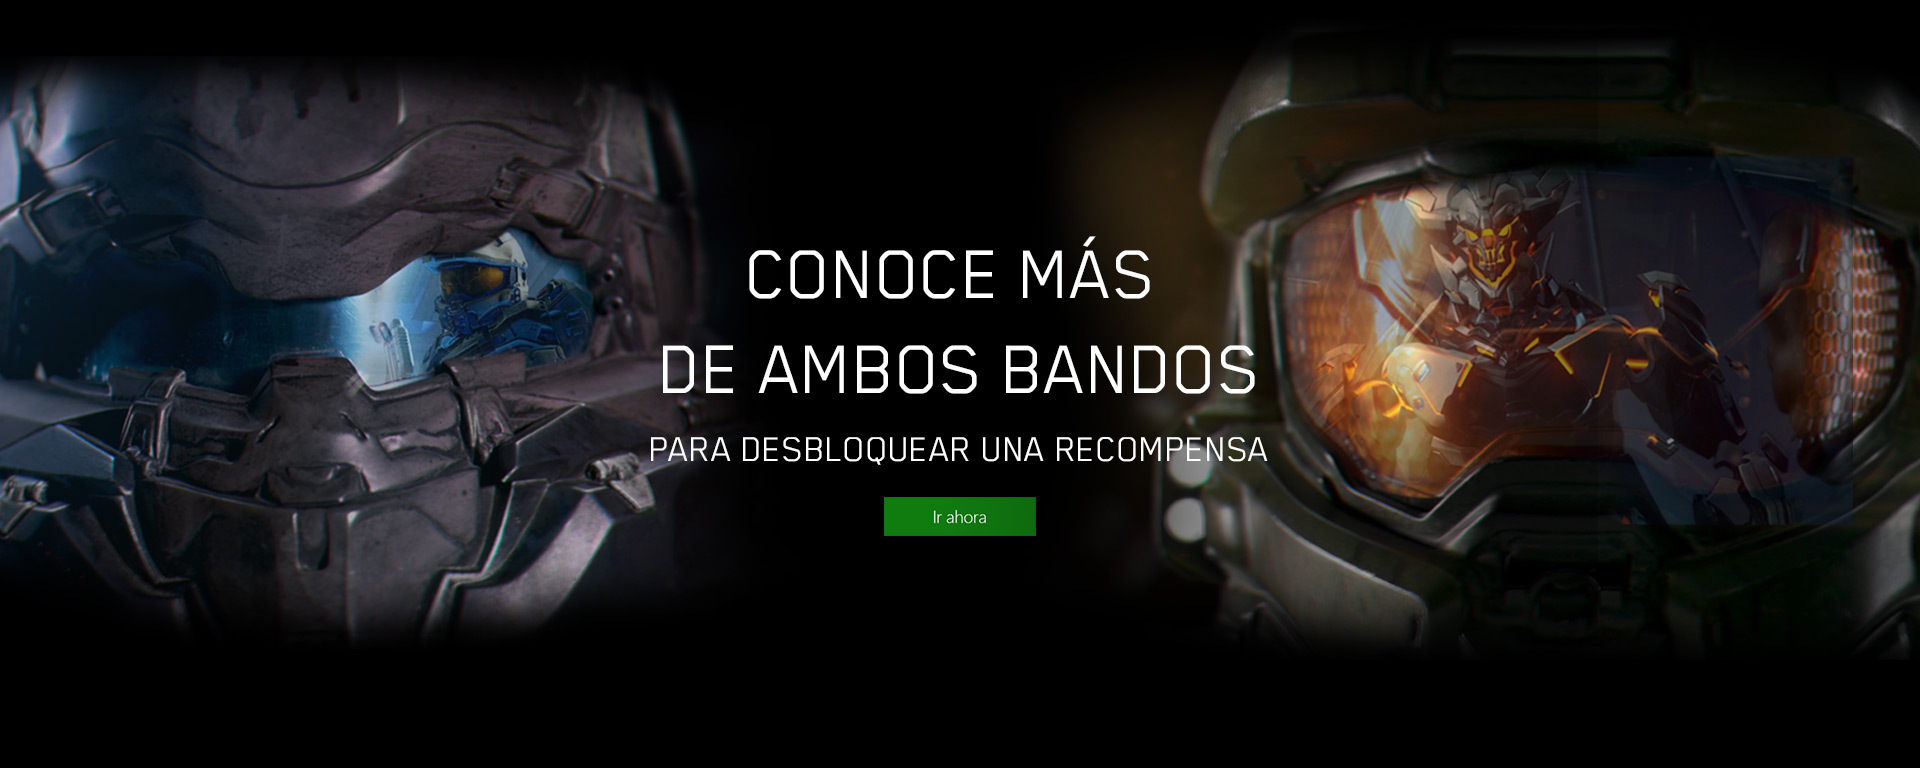 Halo 5 Guardians hero image